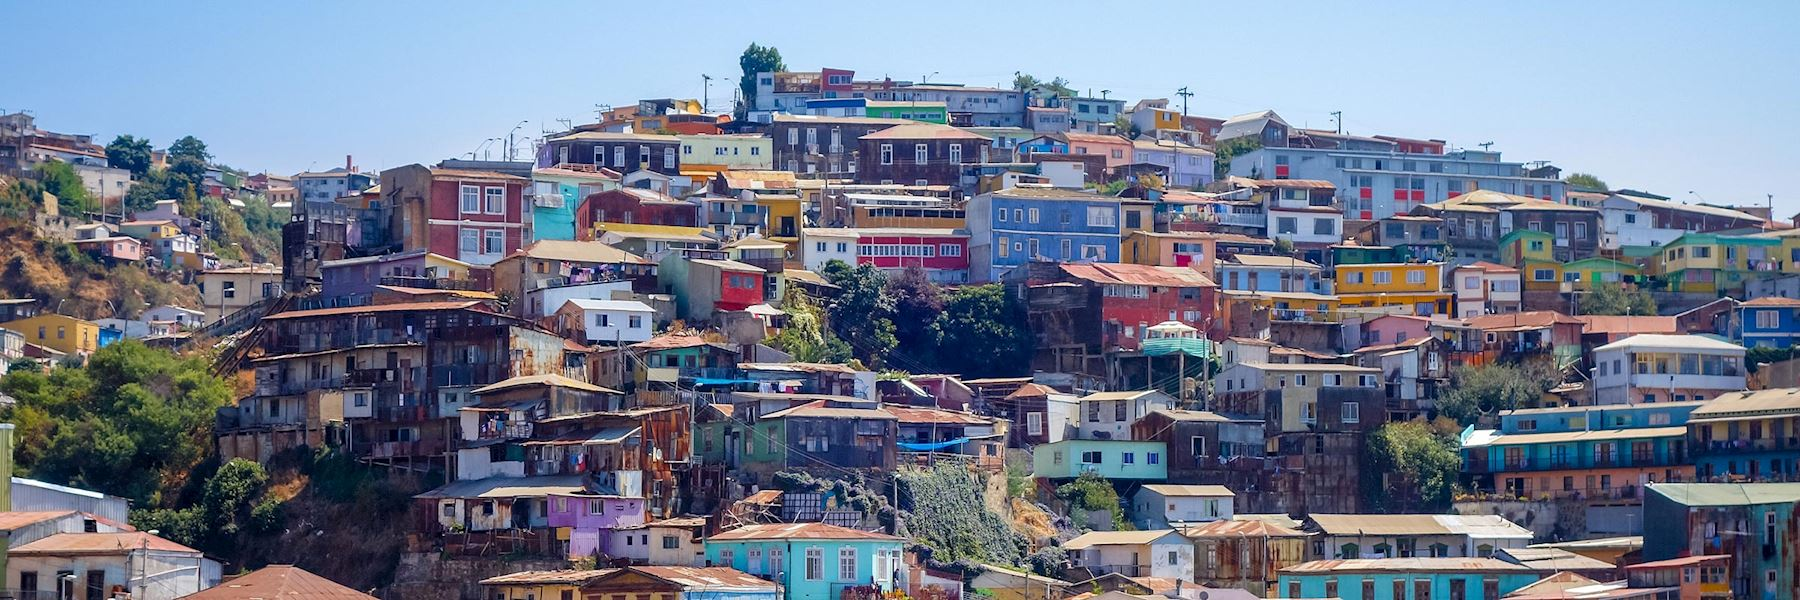 visit valparaiso on a trip to chile audley travel